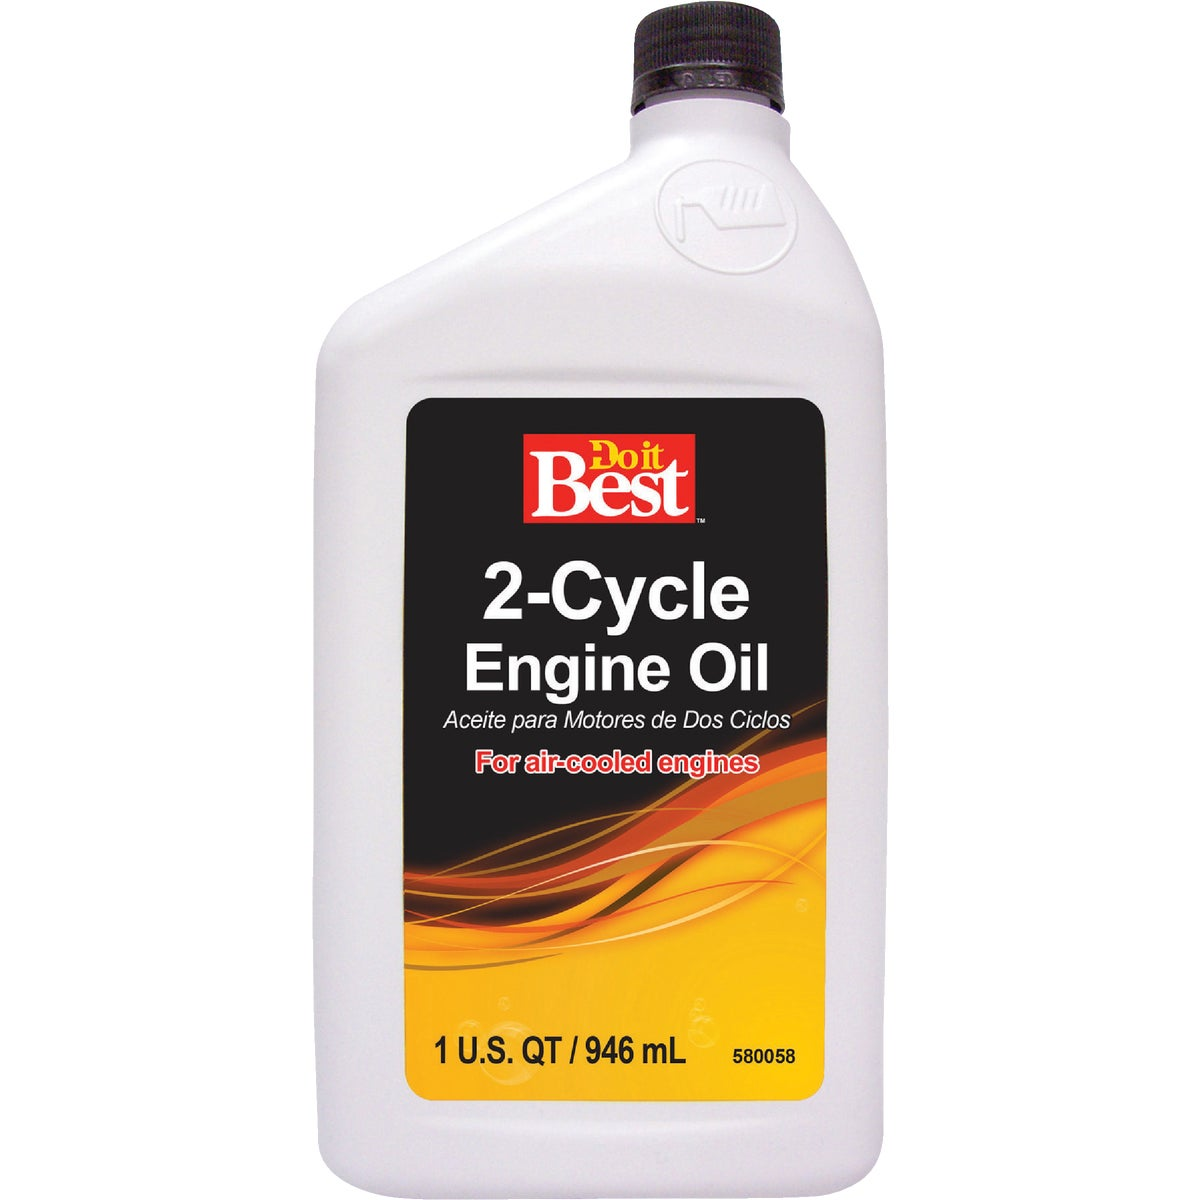 QUART 50:1 2 CYCLE OIL - 580058 by Warren Oil Co Inc